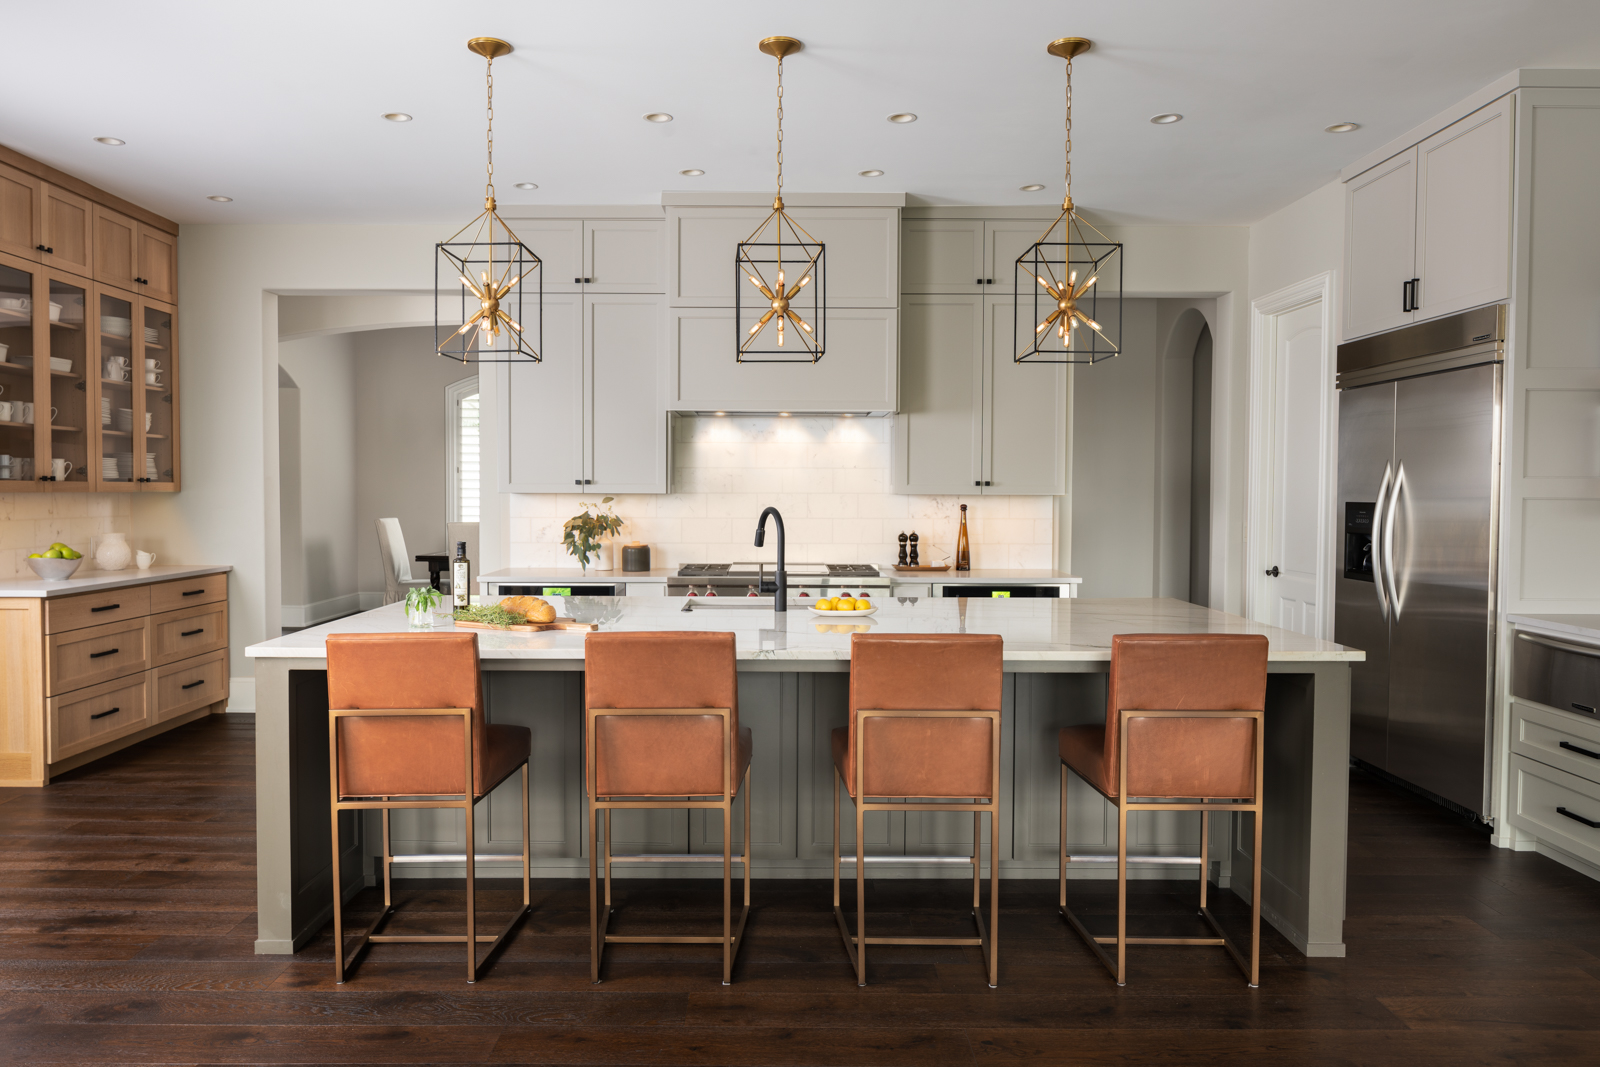 Robert Gomez - Austin Texas Editorial, Food & Beverage, Interiors Photographer | Interiors | 16